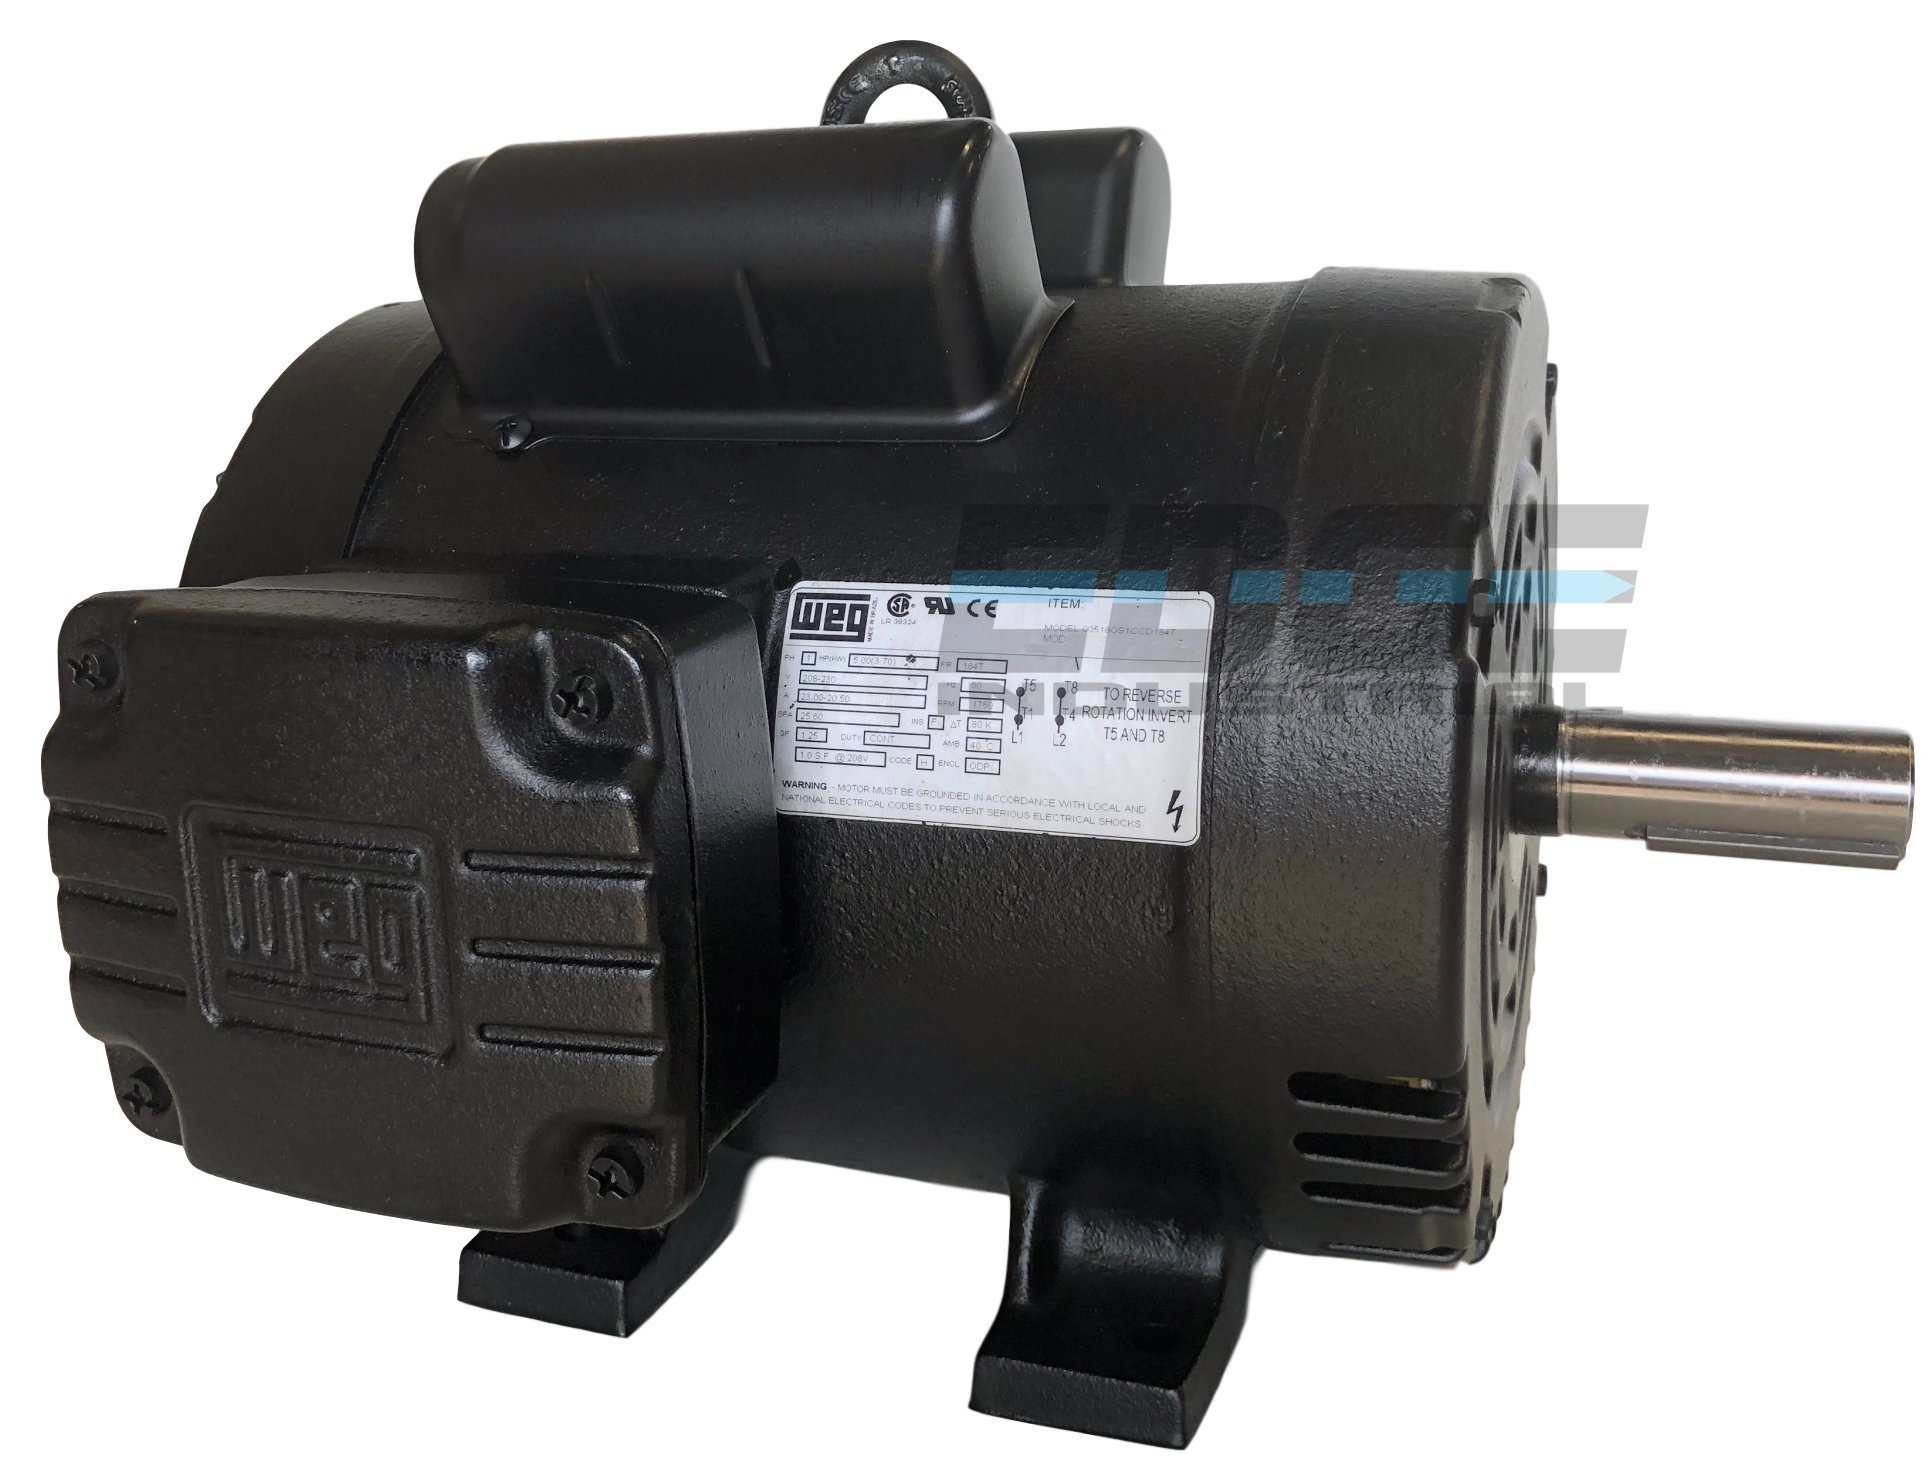 NEW 5HP 184T FRAME WEG ELECTRIC MOTOR FOR AIR COMPRESSOR 1750 RPM 230V 21.5 AMP product